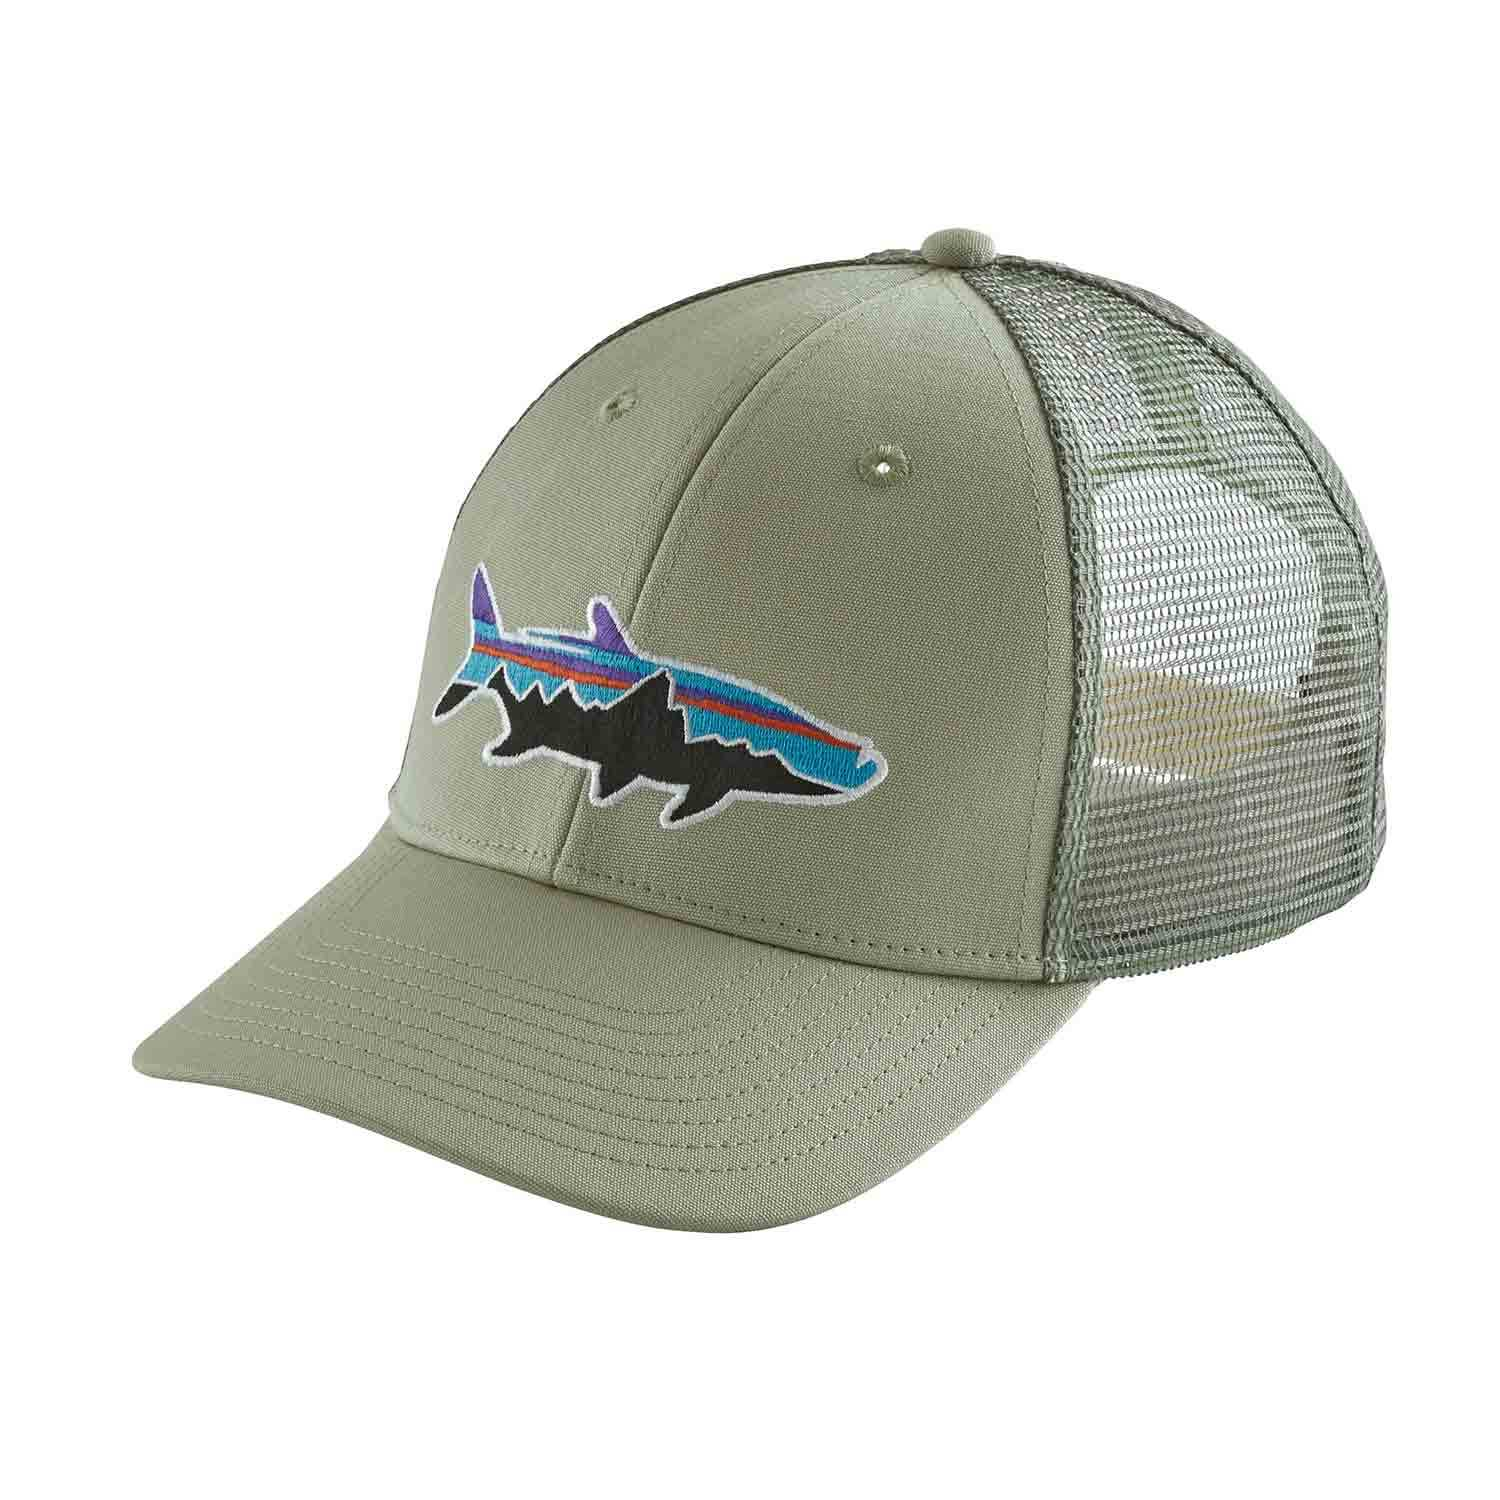 4b571336e Men's Fitz Roy Tarpon LoPro Trucker Hat